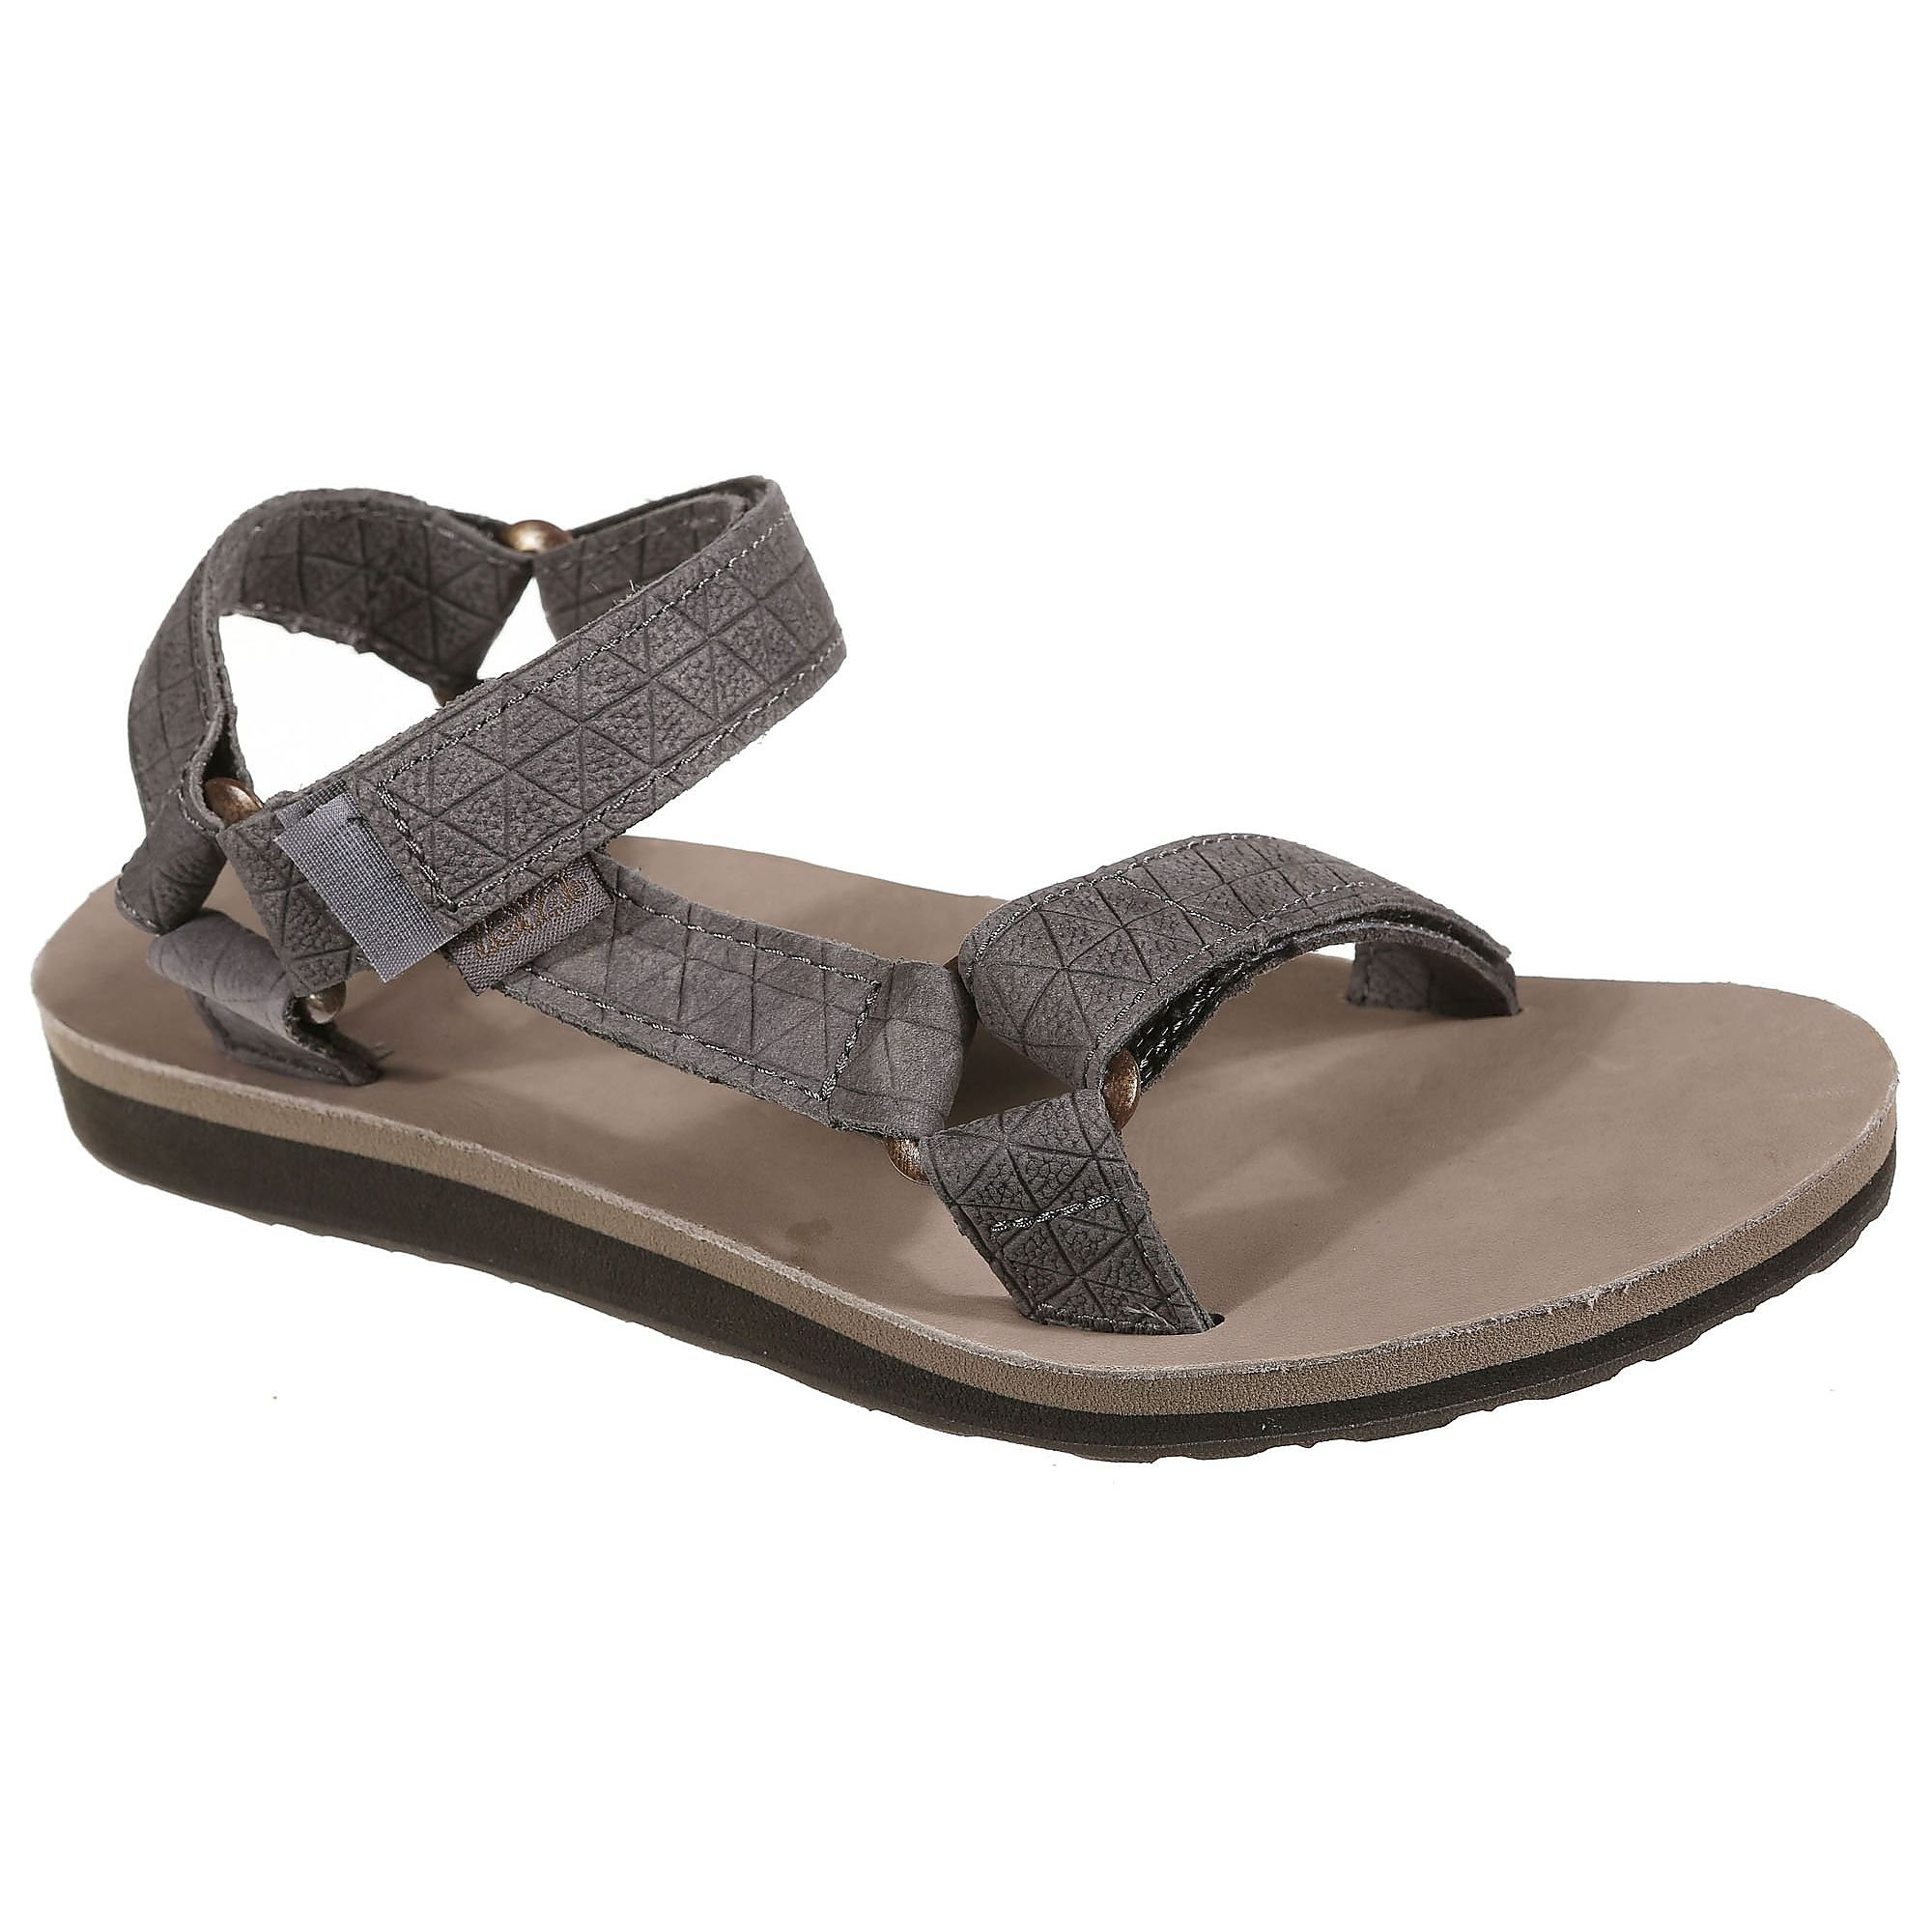 TEVA ORIGINAL UNIVERSAL LEATHER SLIPPERS GRIJS DAMES